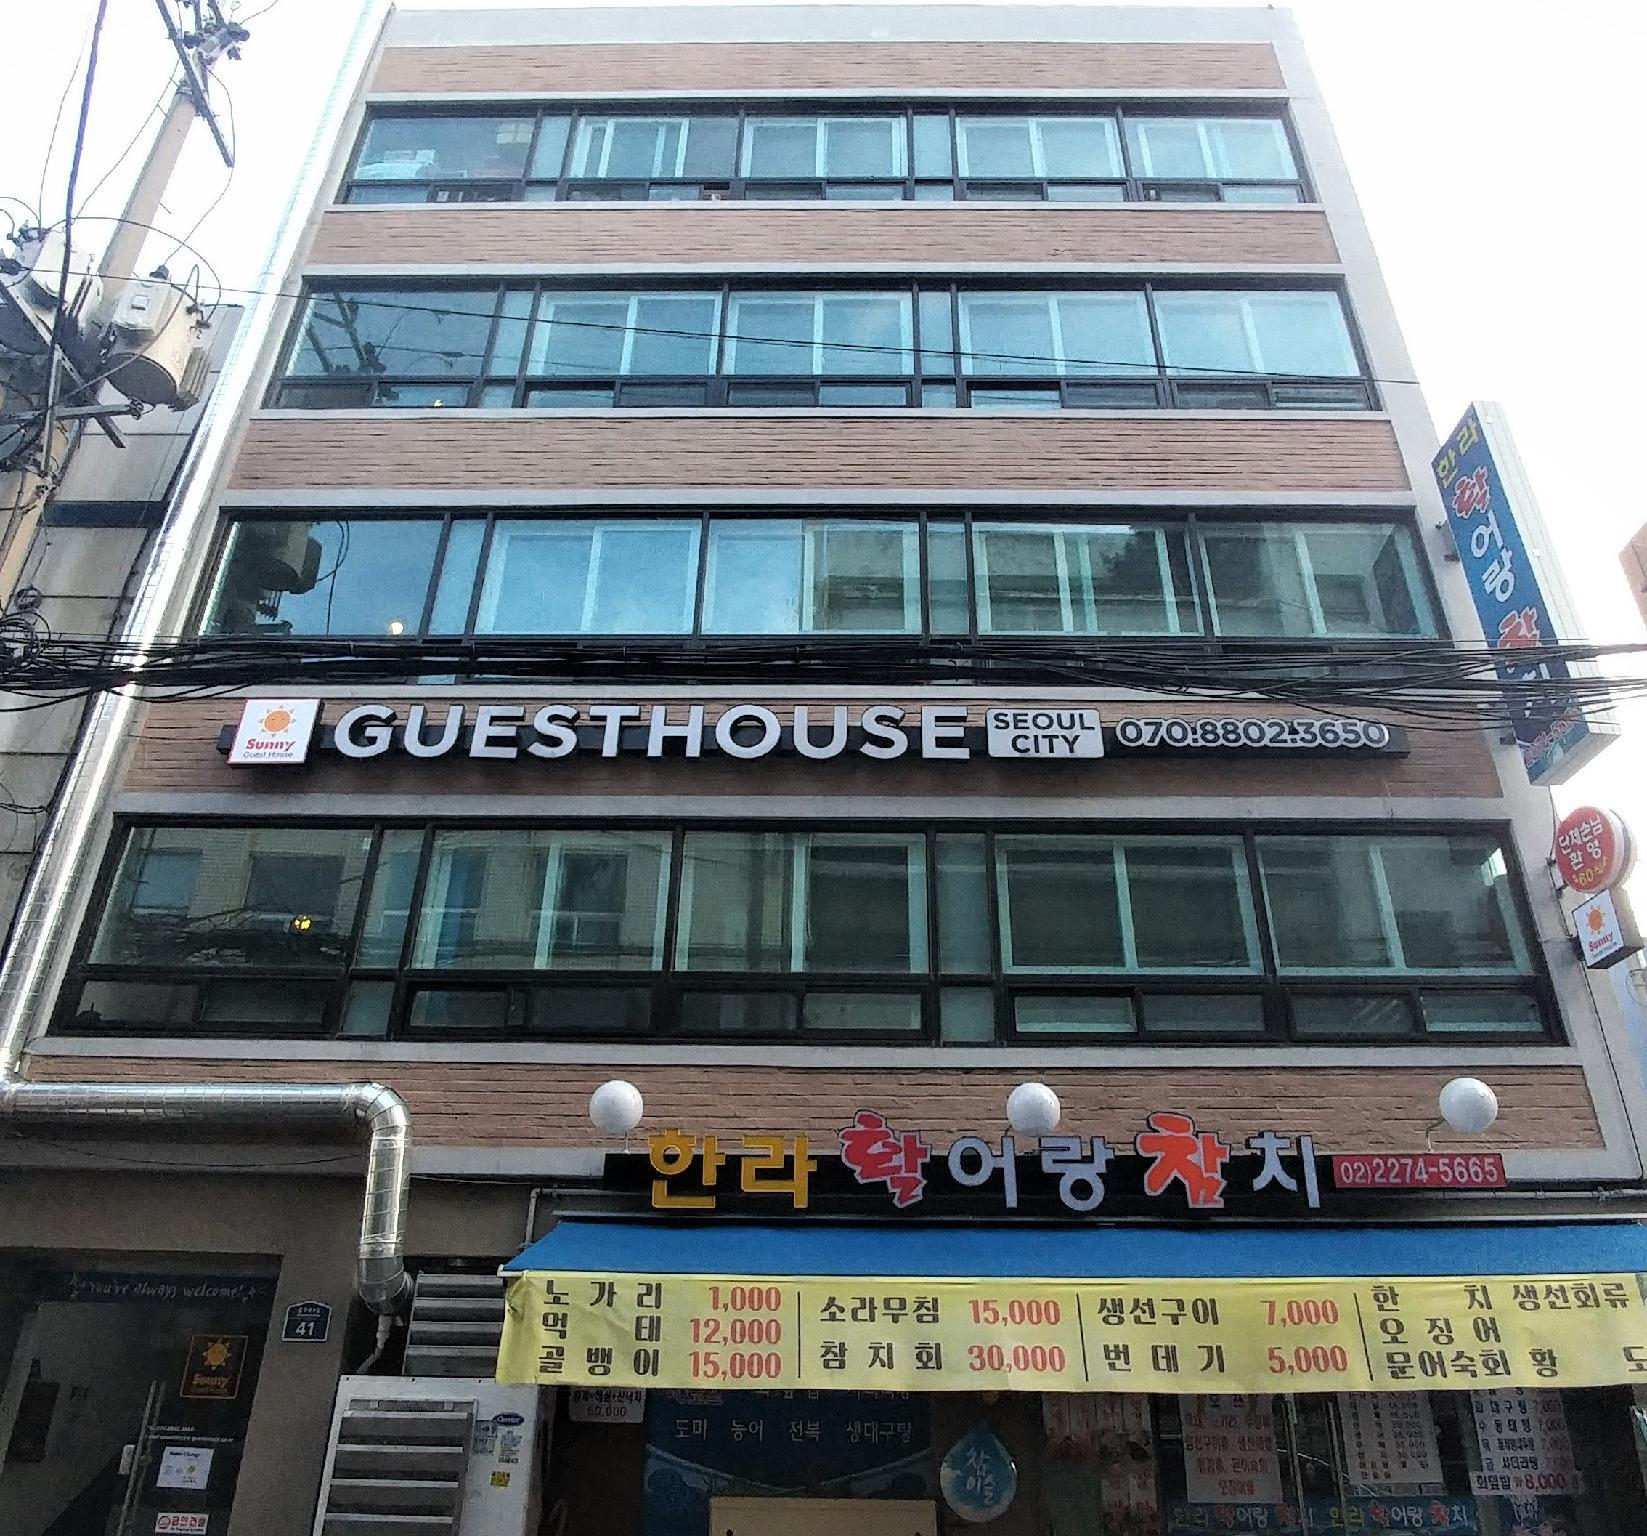 sunny guest house seoul city in south korea room deals photos rh agoda com